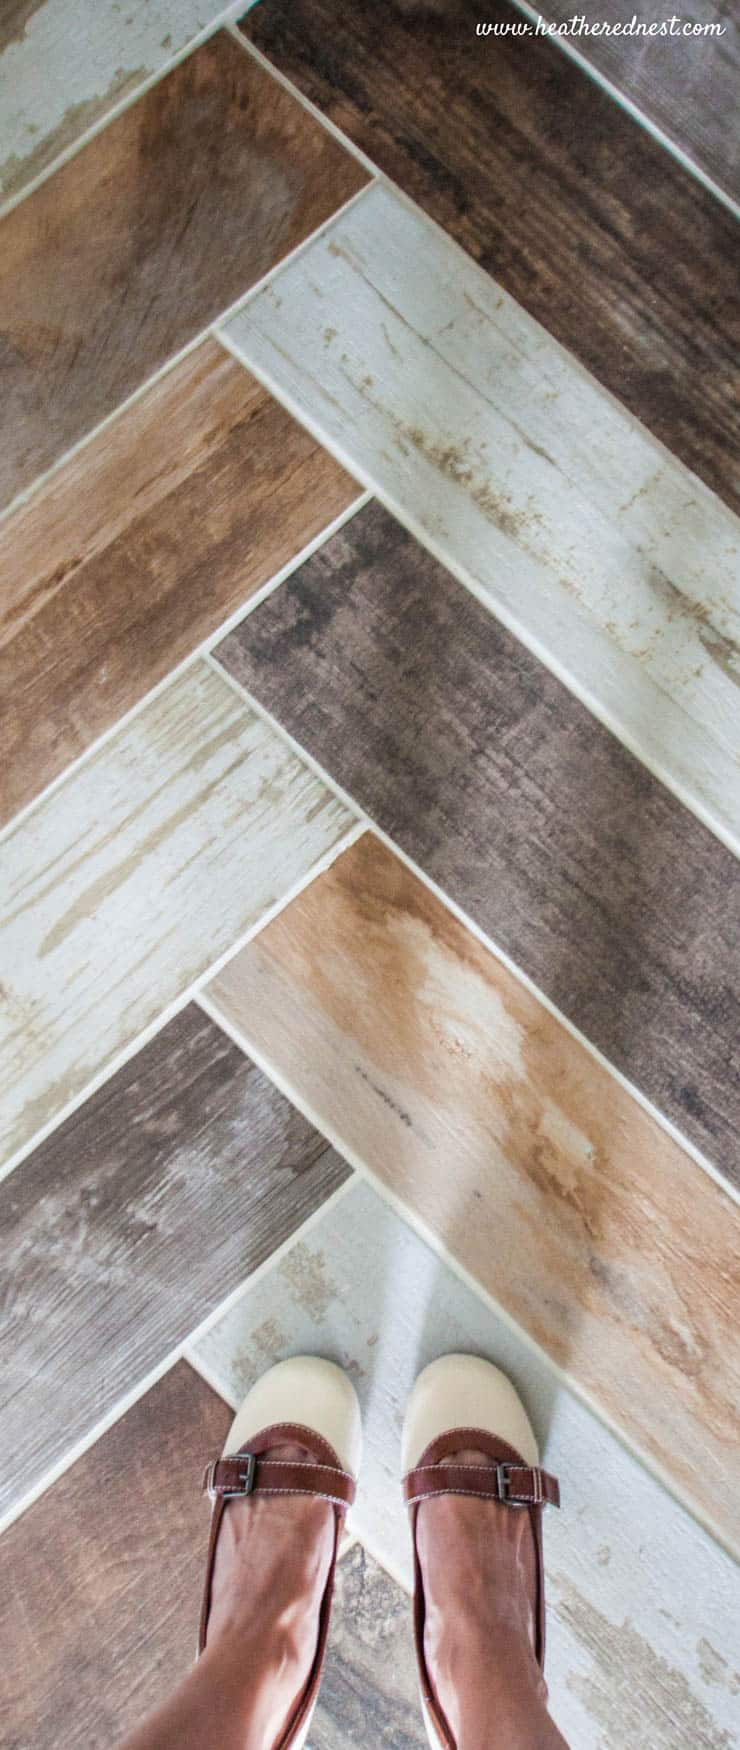 faux wood tile porcelain 6x24 www.heatherednest.com